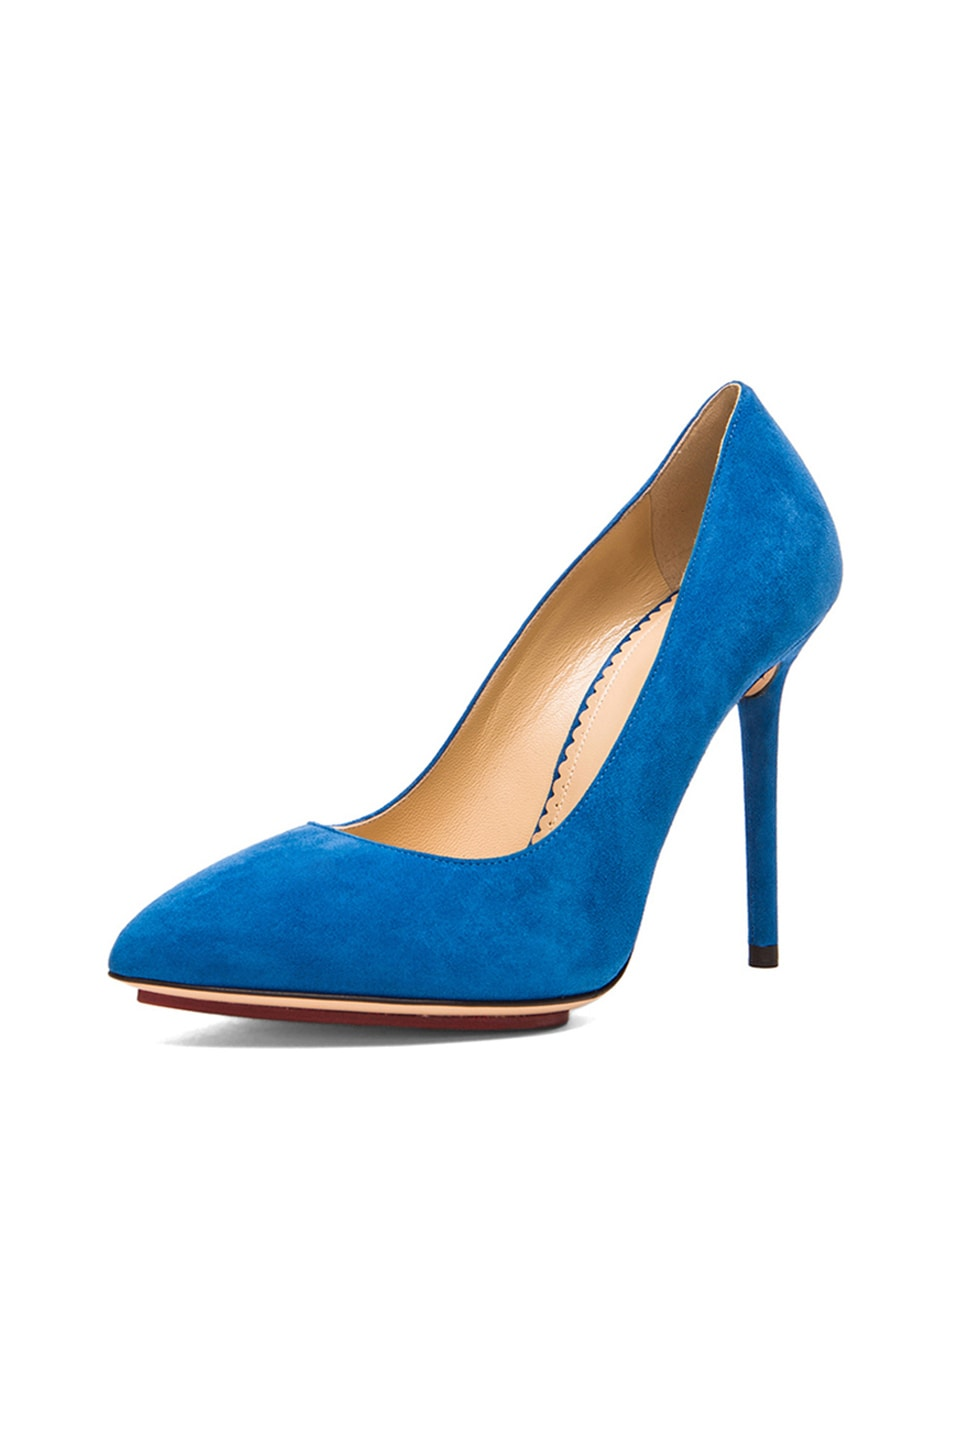 Image 2 of Charlotte Olympia Monroe Suede Pumps in Cobalt Blue